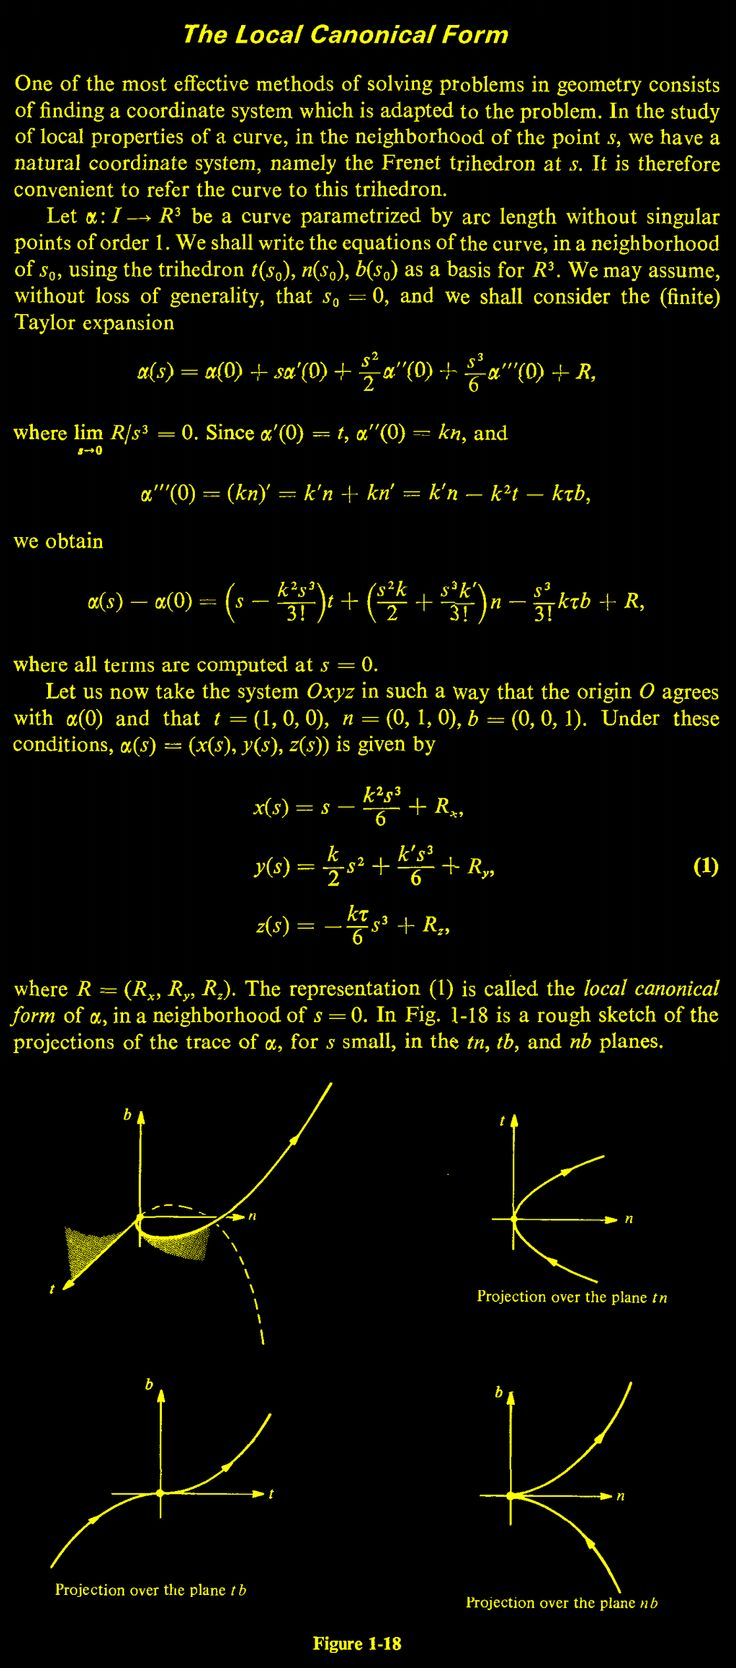 The Local Canonical Form of a Curve in 3D Euclidean Space